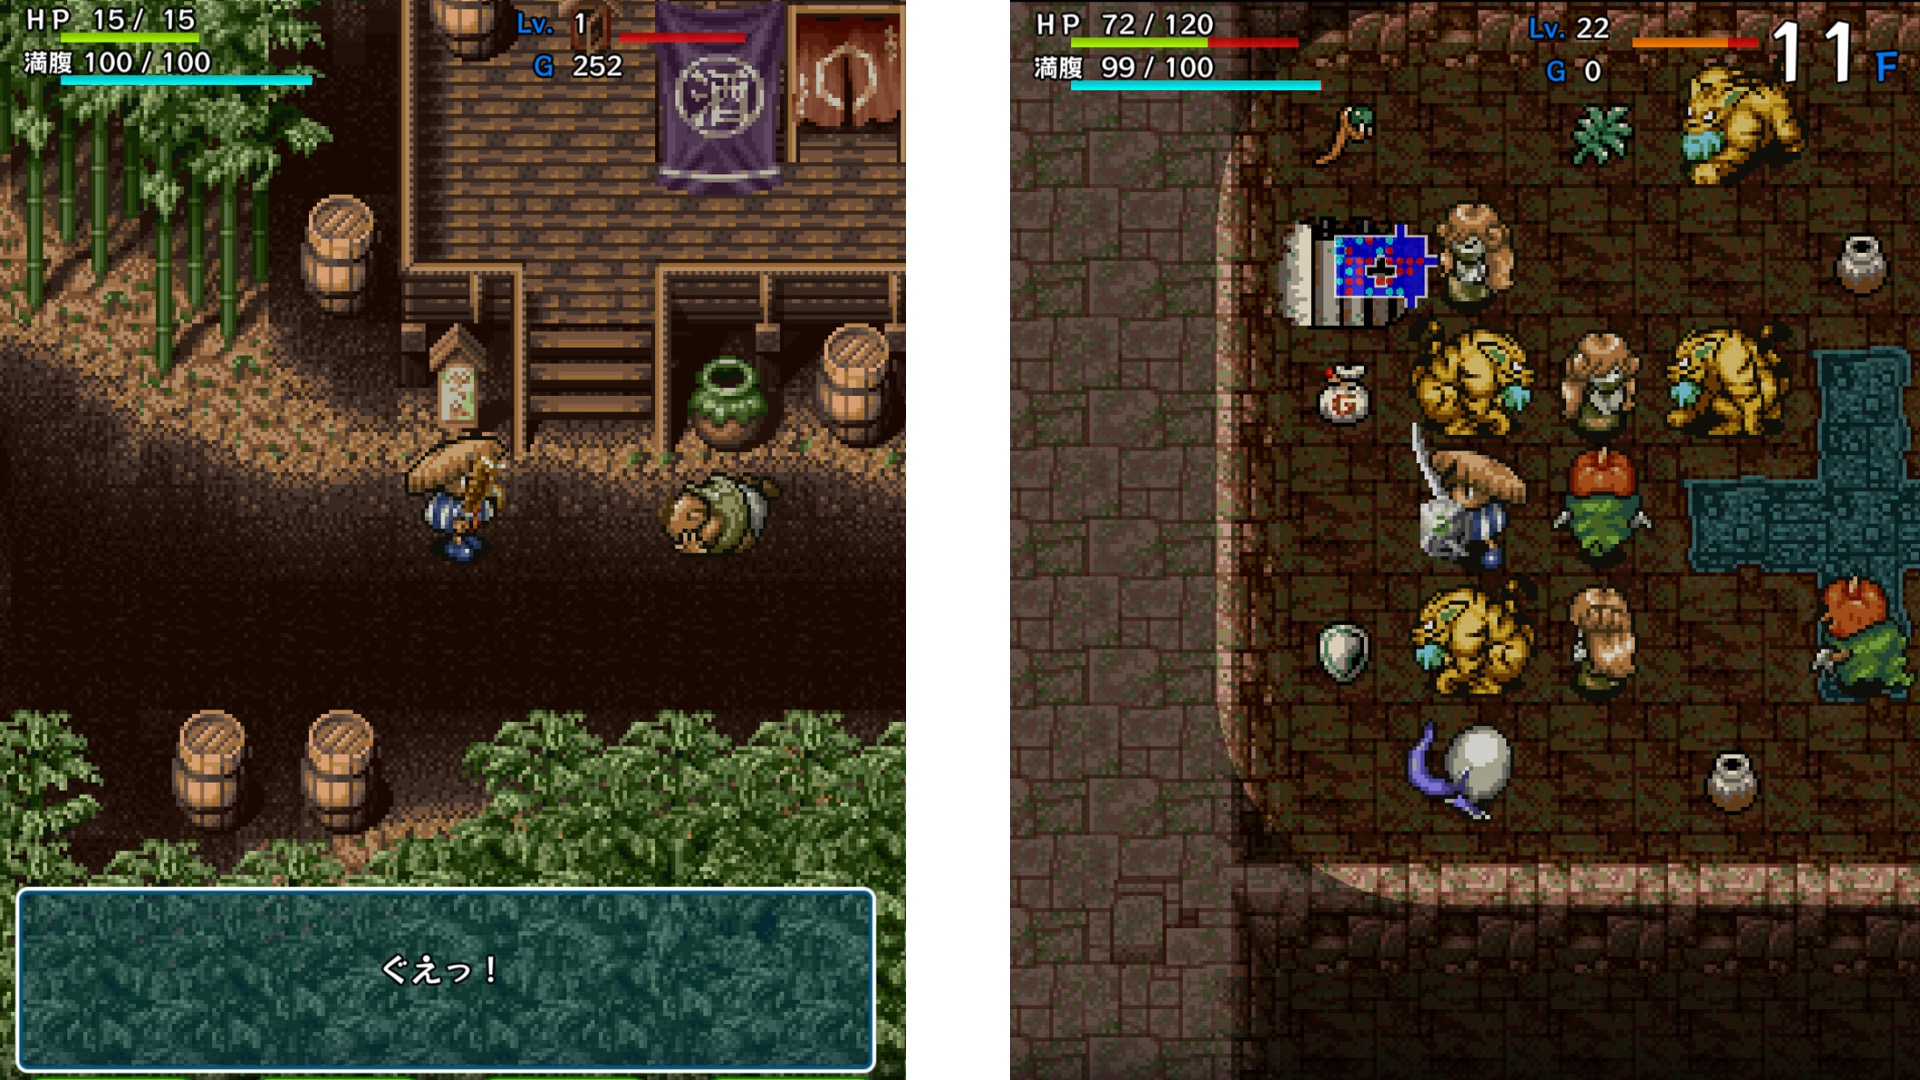 Nintendo DS RPG 'Mystery Dungeon: Shiren the Wanderer' Is Coming to